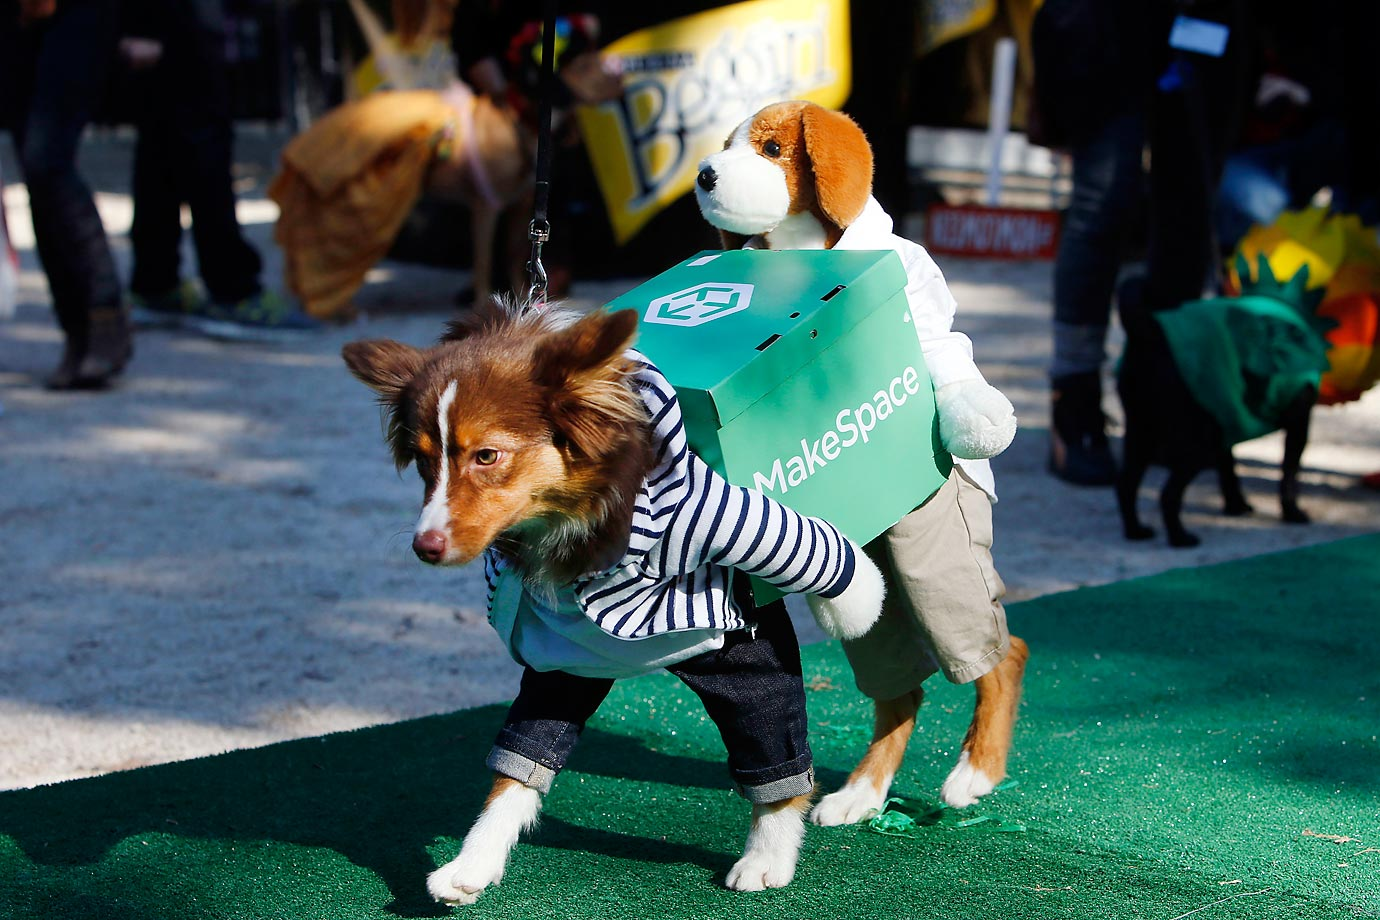 Dogs in Costume & Hot Clicks: Dogs in Halloween Costumes | SI.com